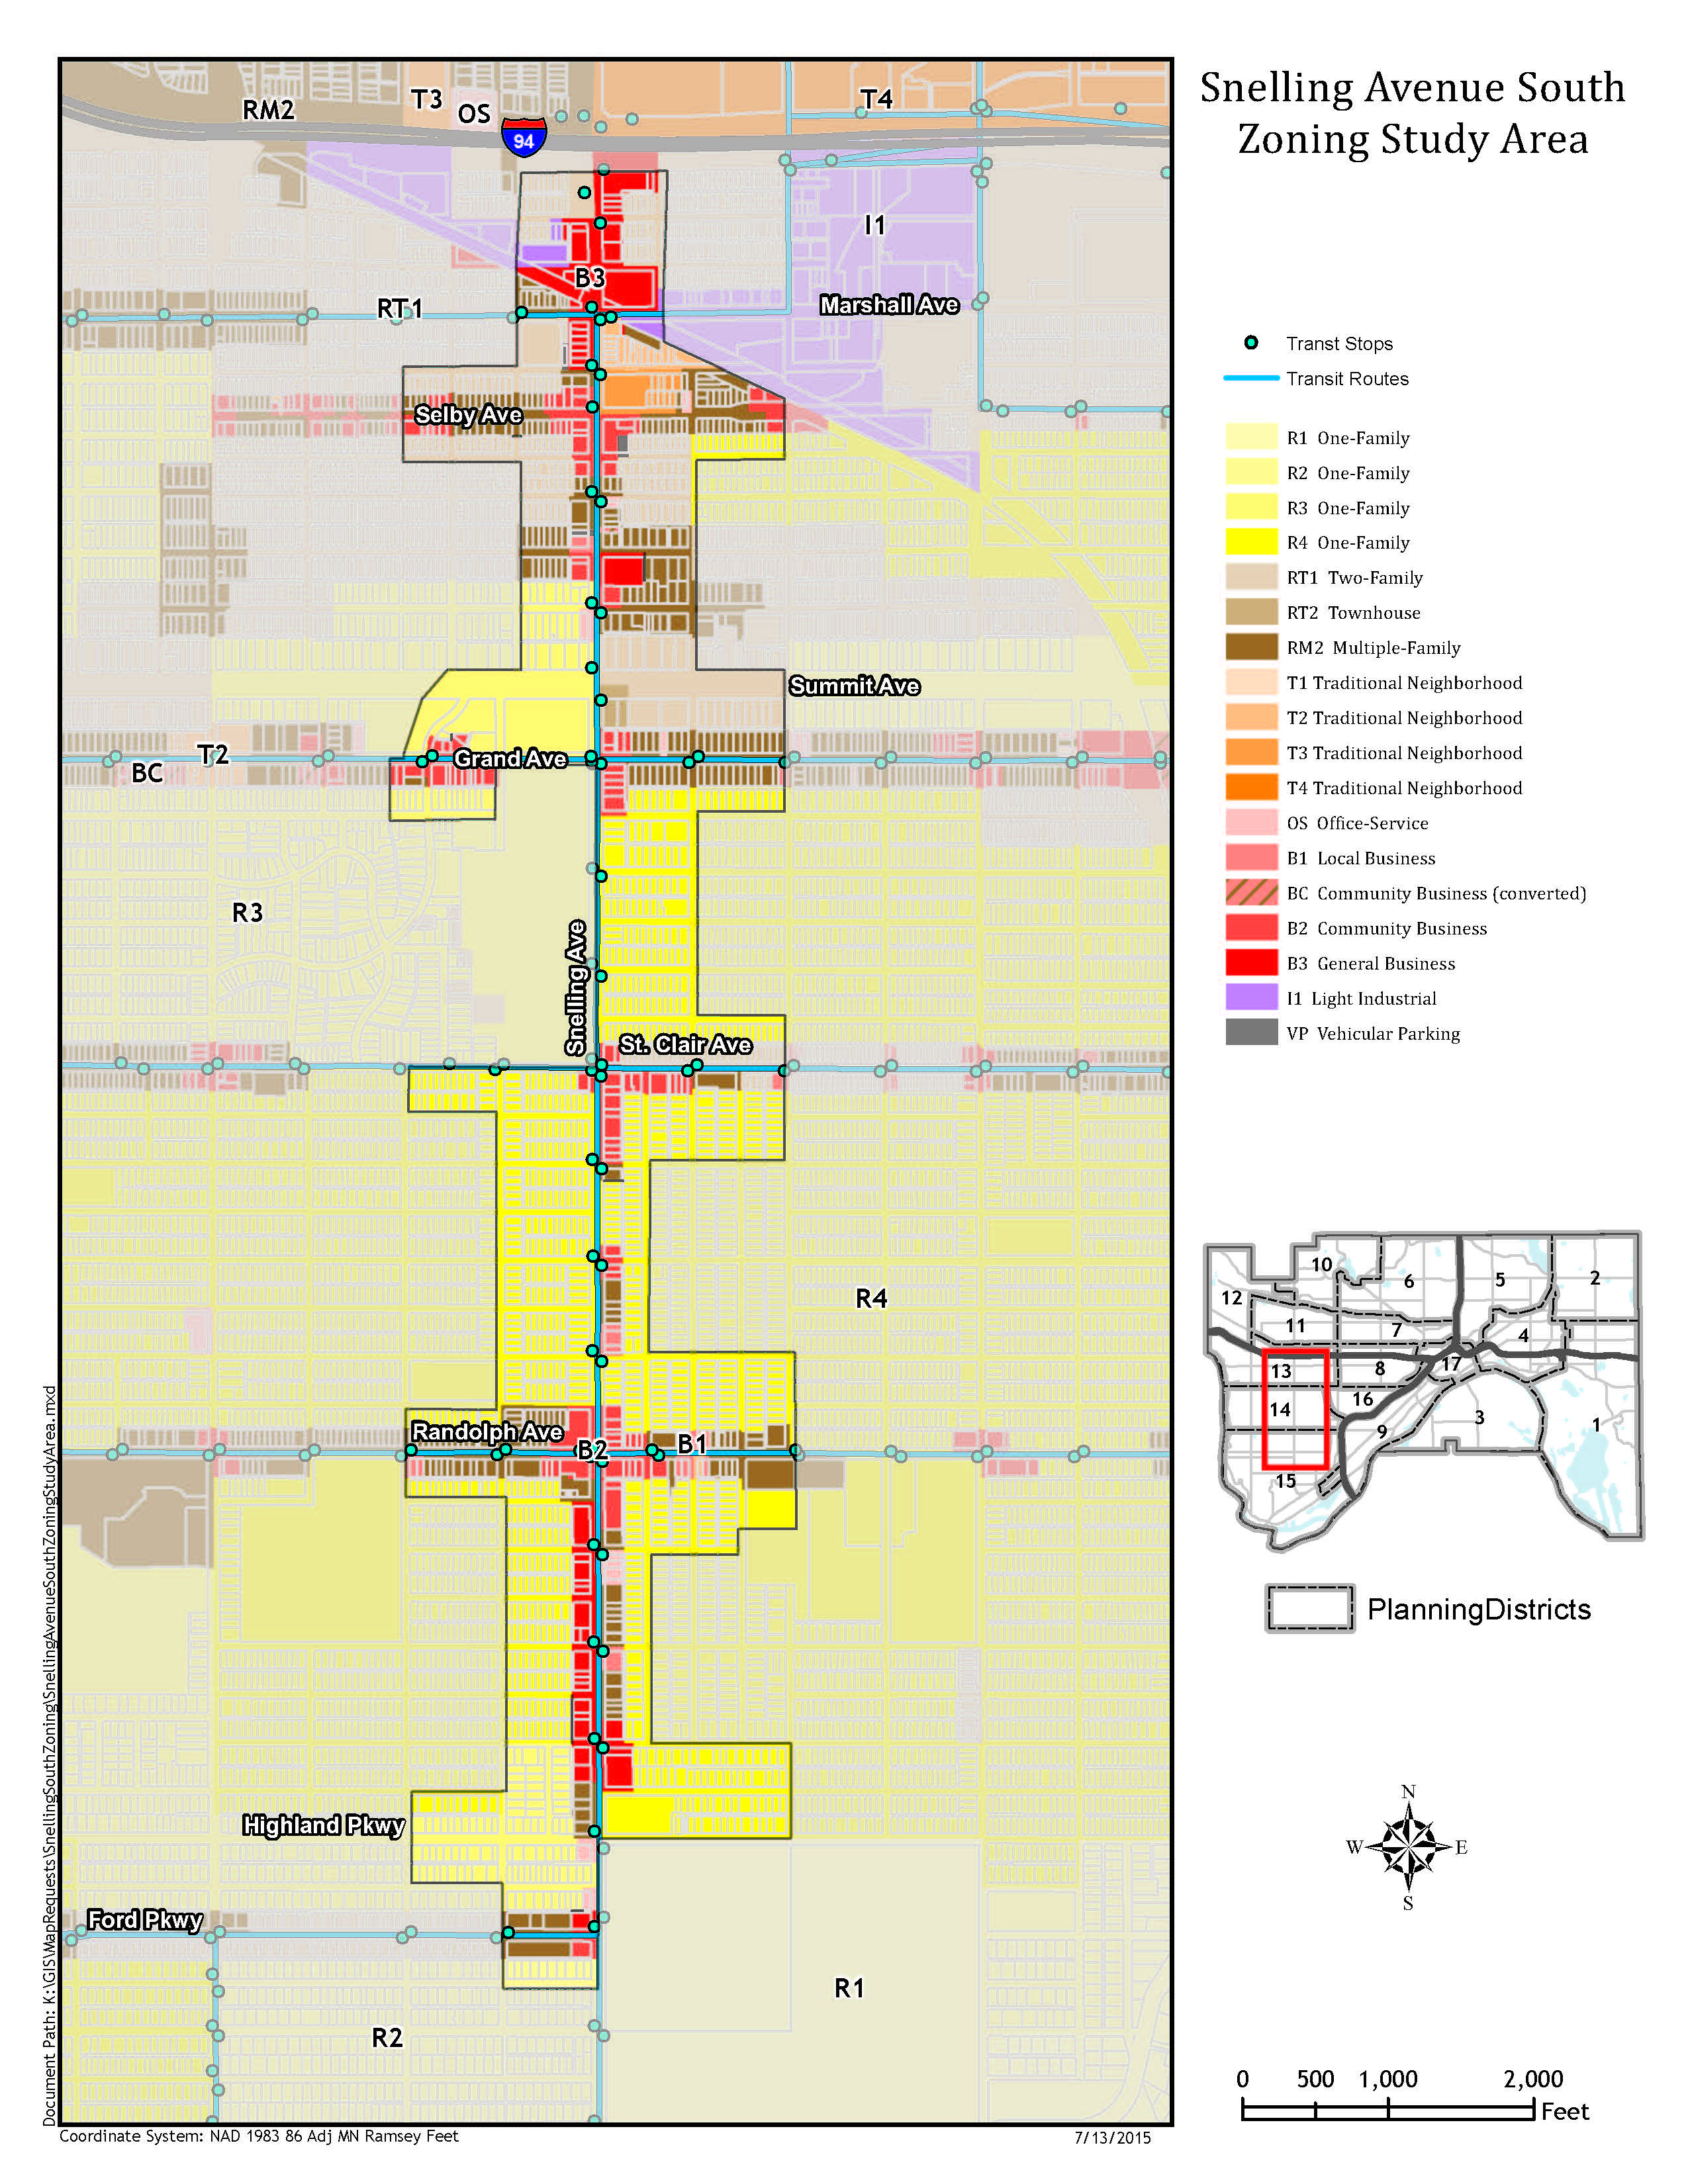 Map of proposed zoning changes for Snelling Avenue South